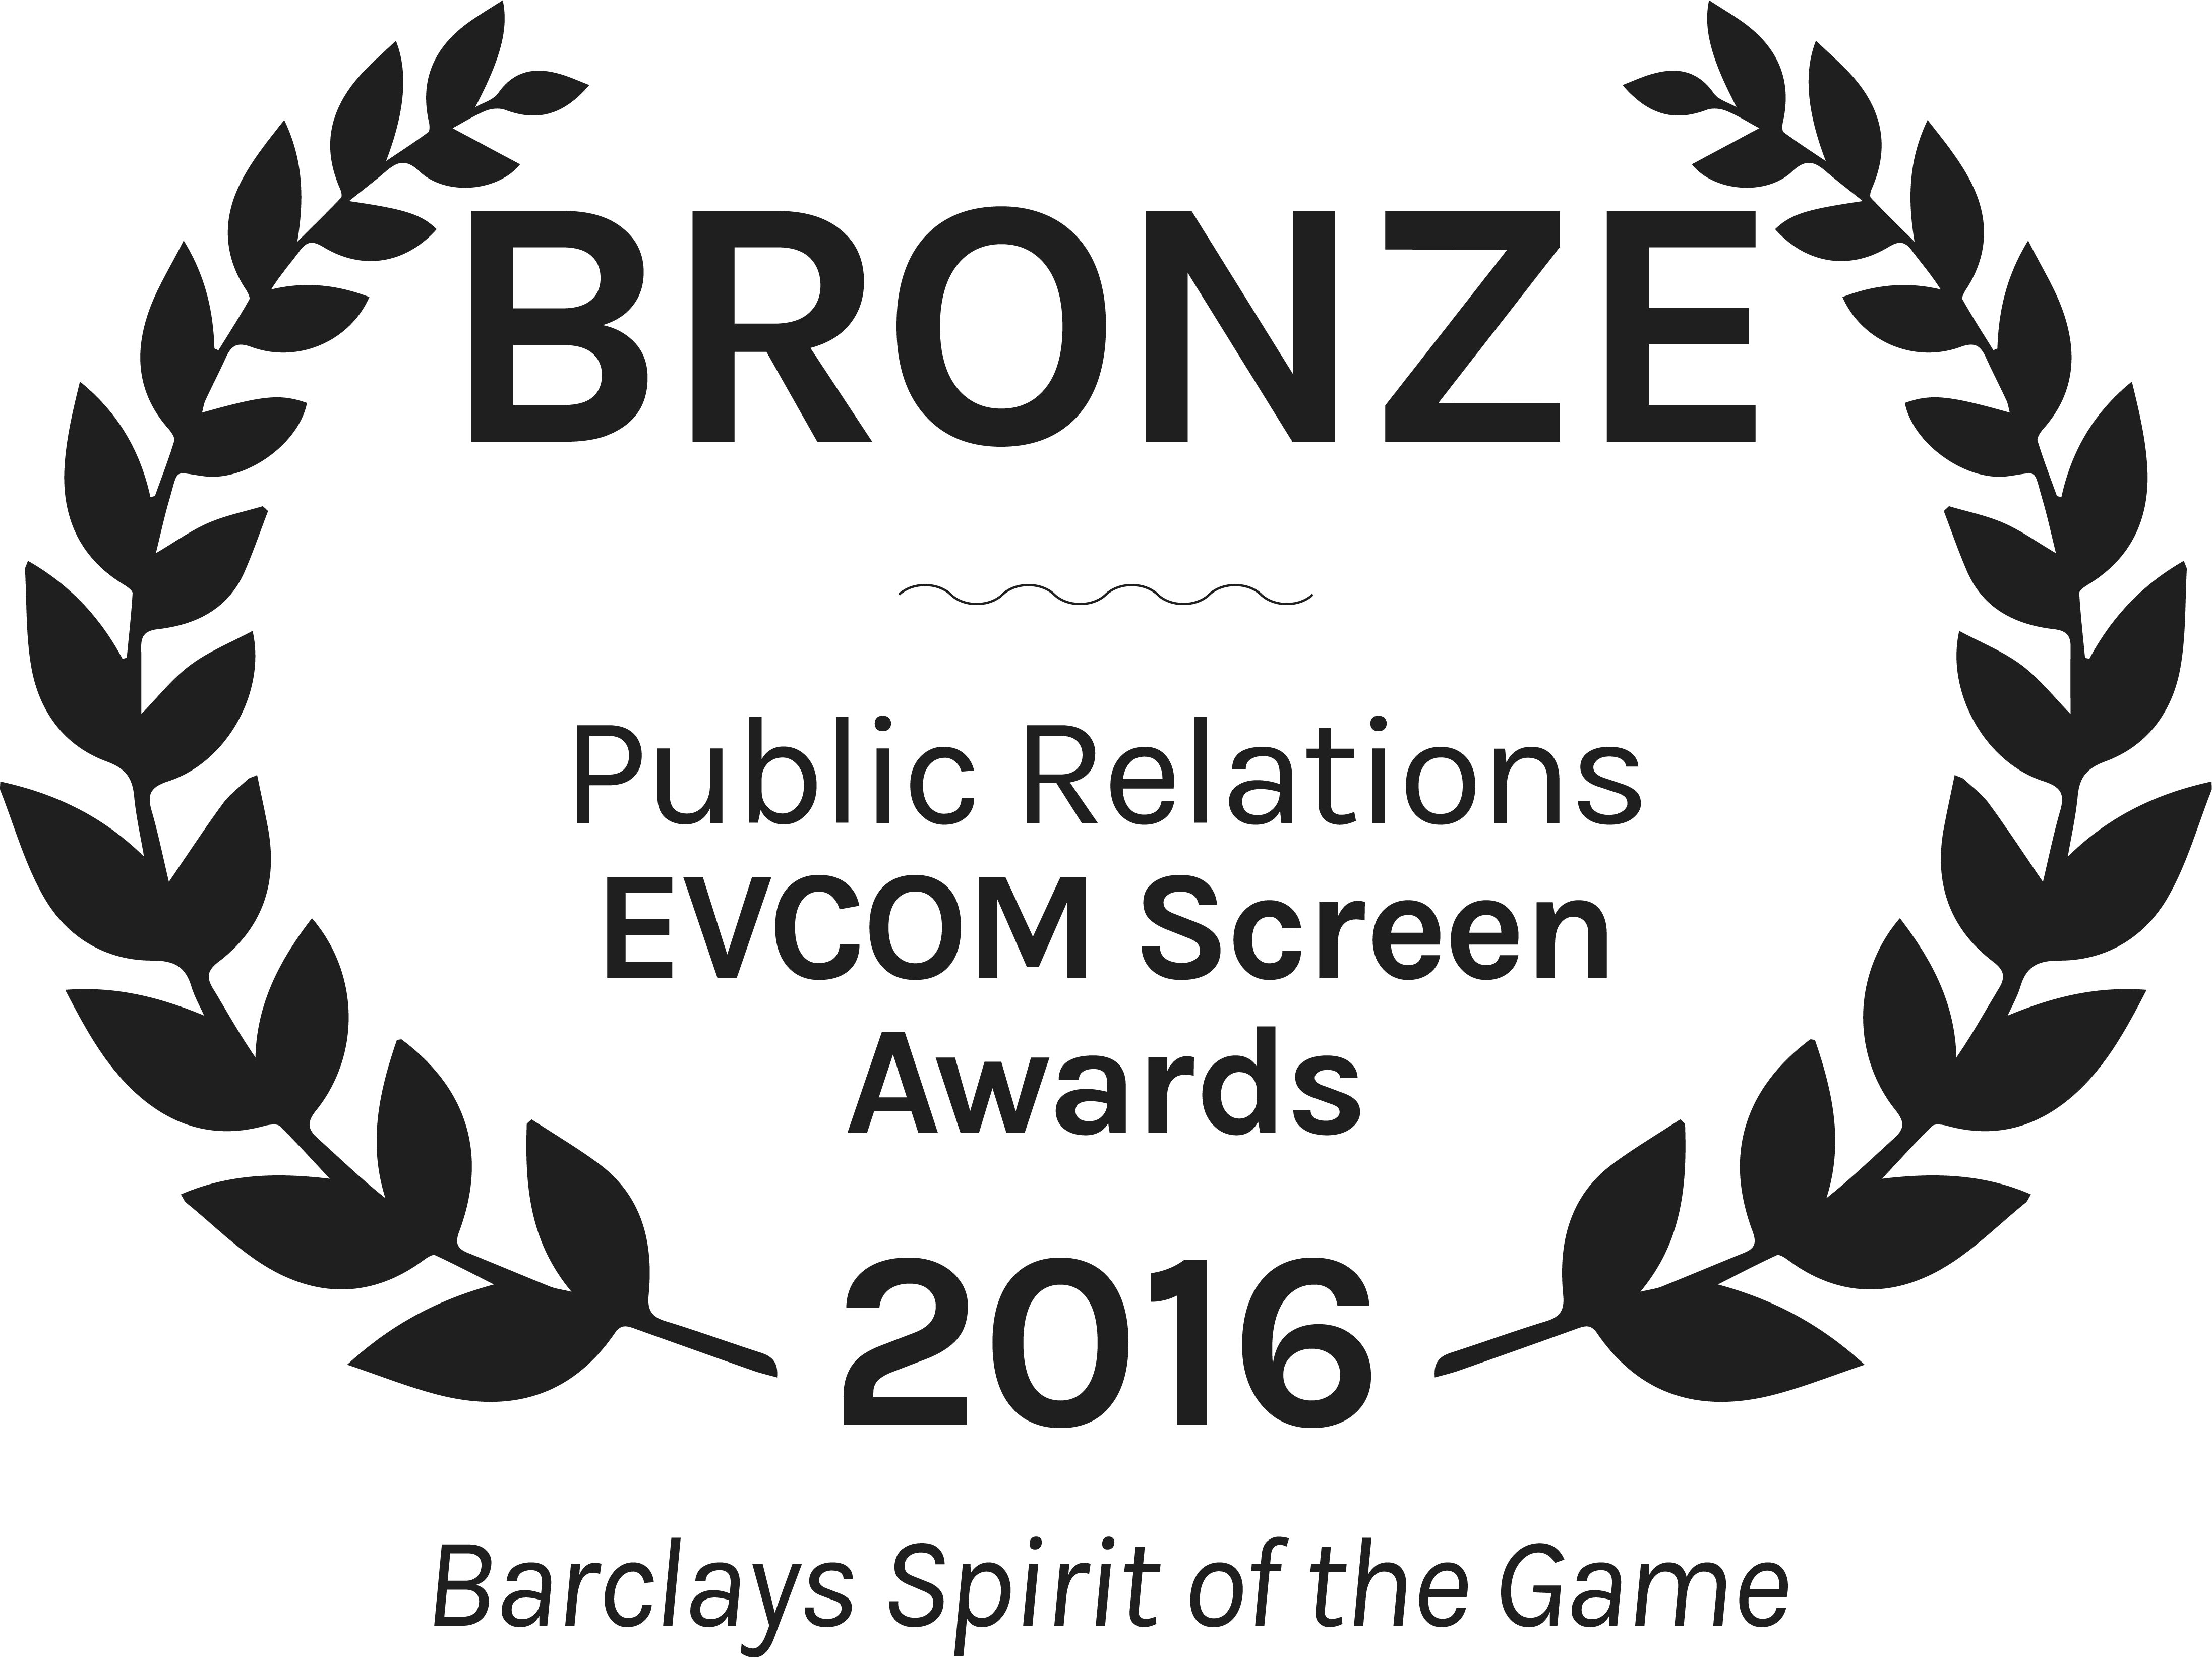 Barclays-Spirit-of-the-Game-Bronze-Public-Relations-EVCOM-Screen-Awards-2016.png